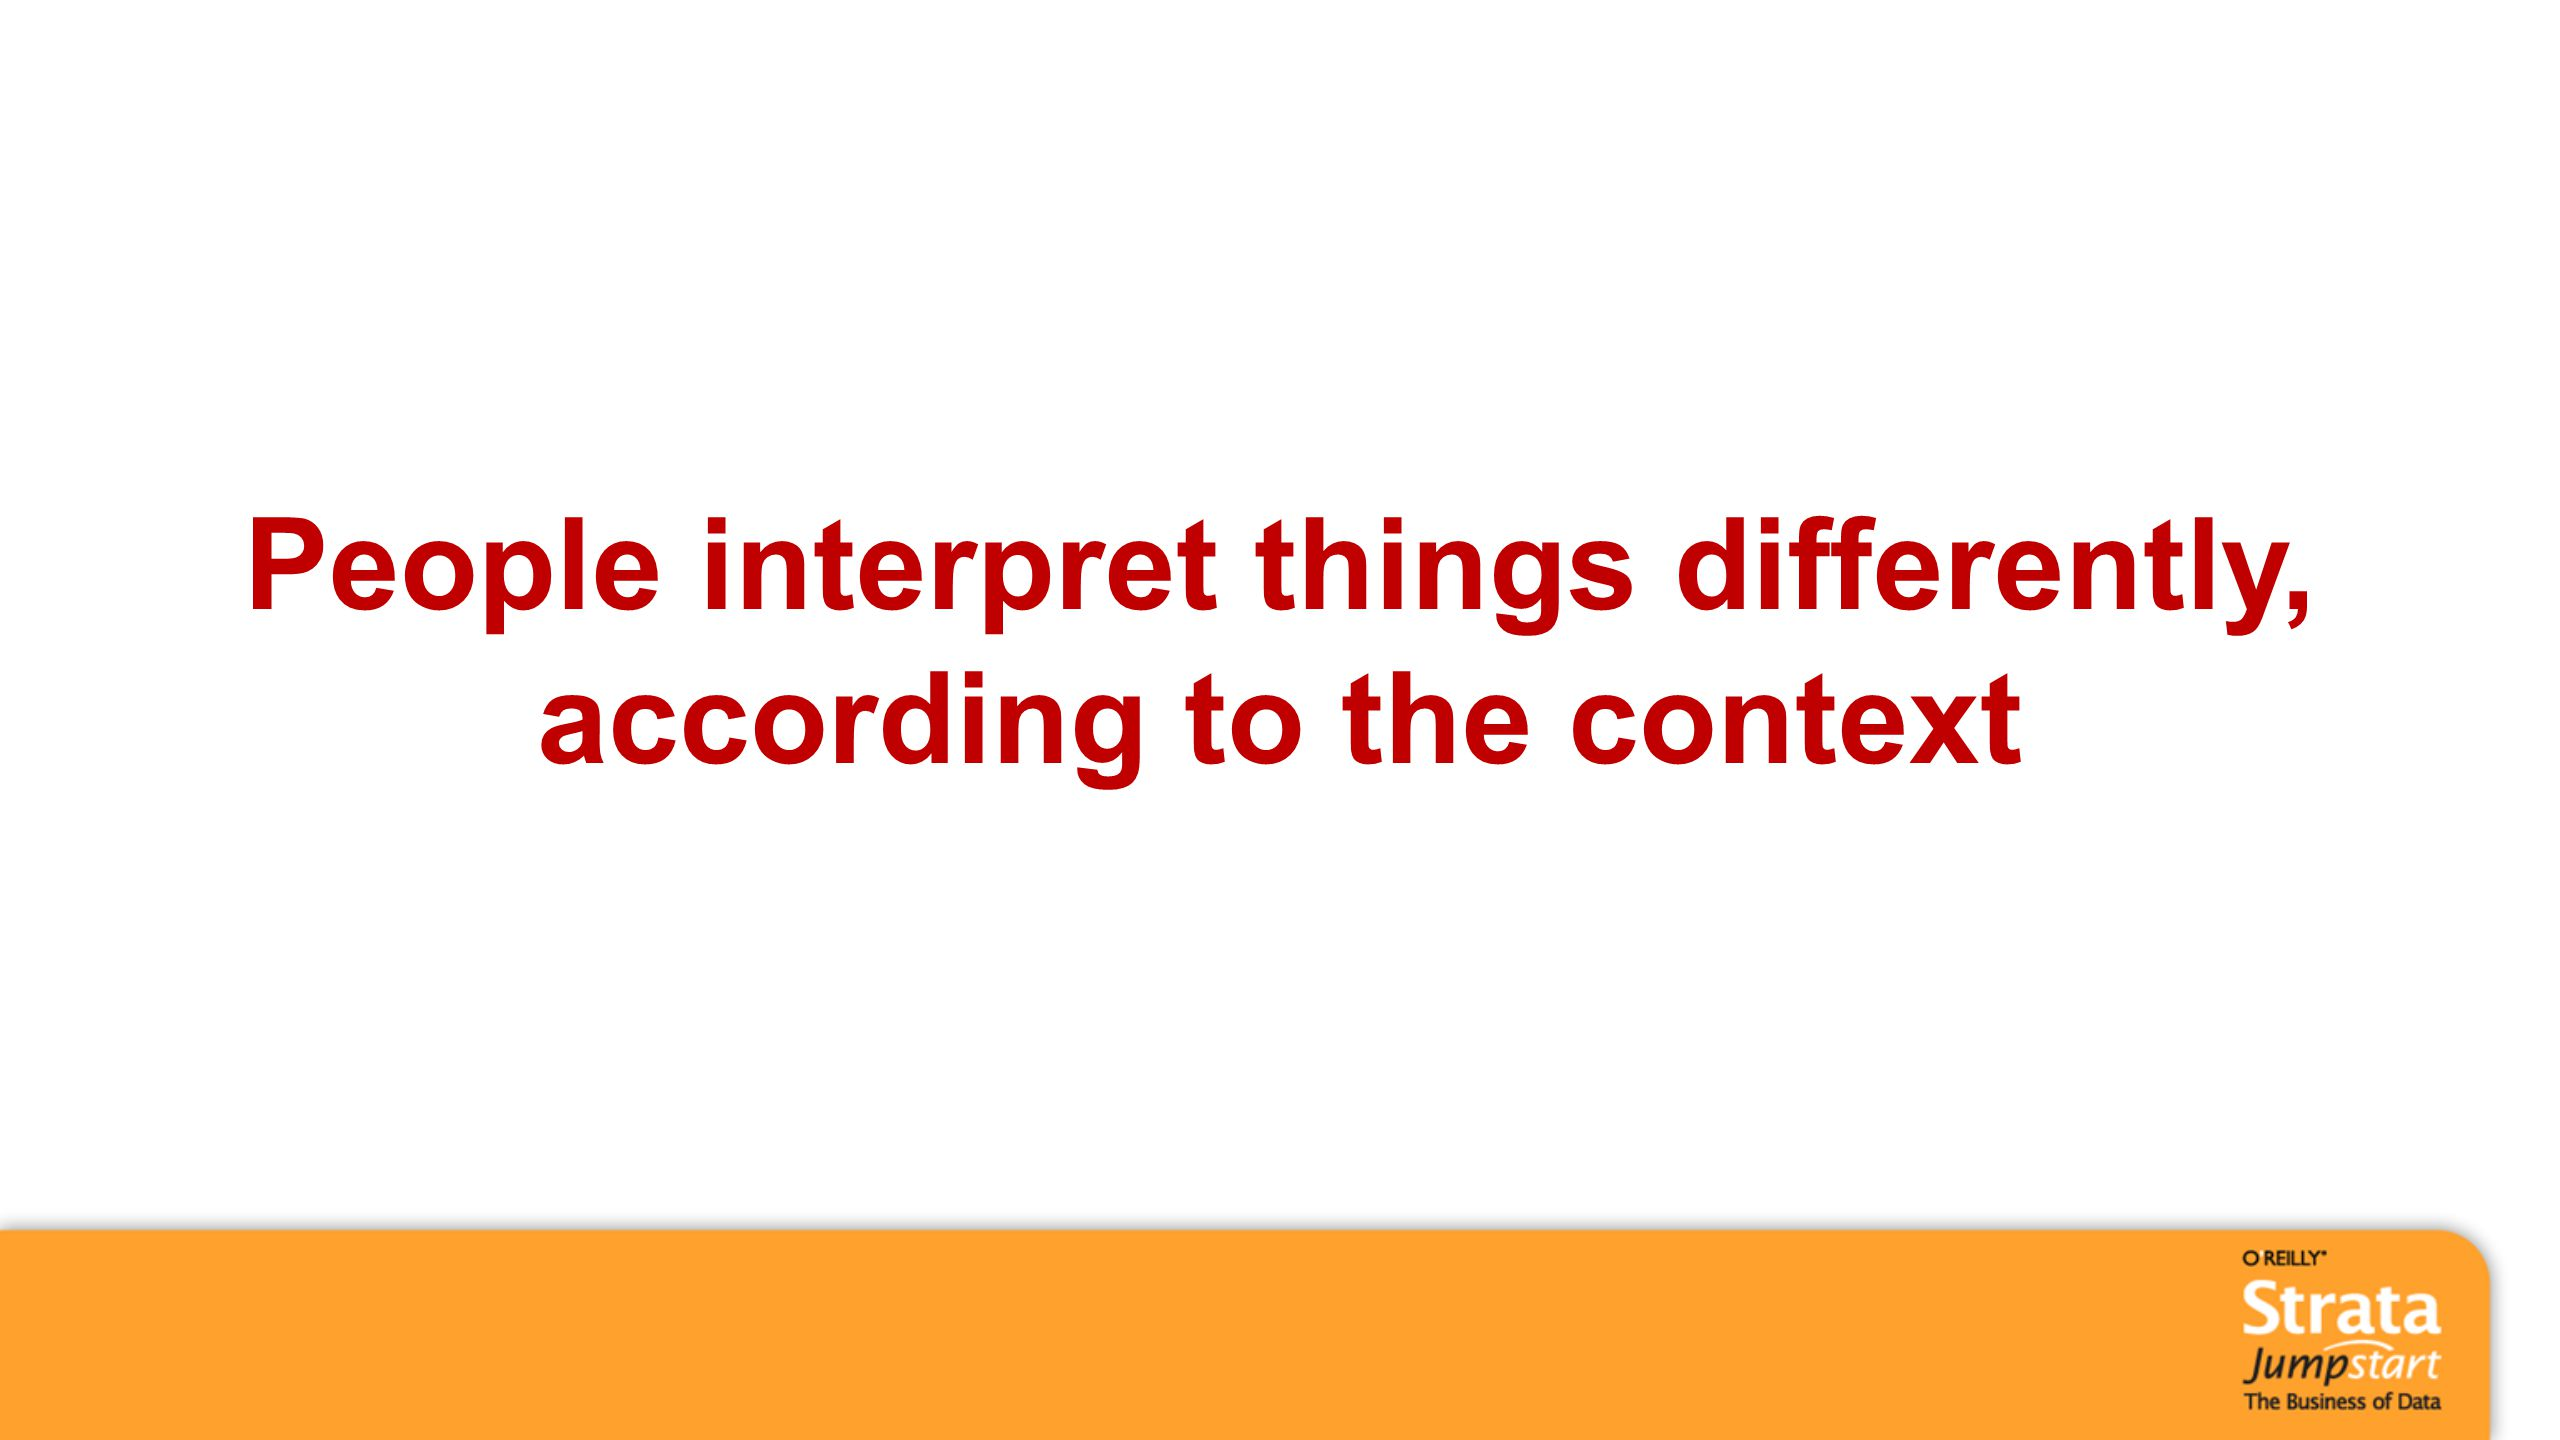 People interpret things differently, according to the context